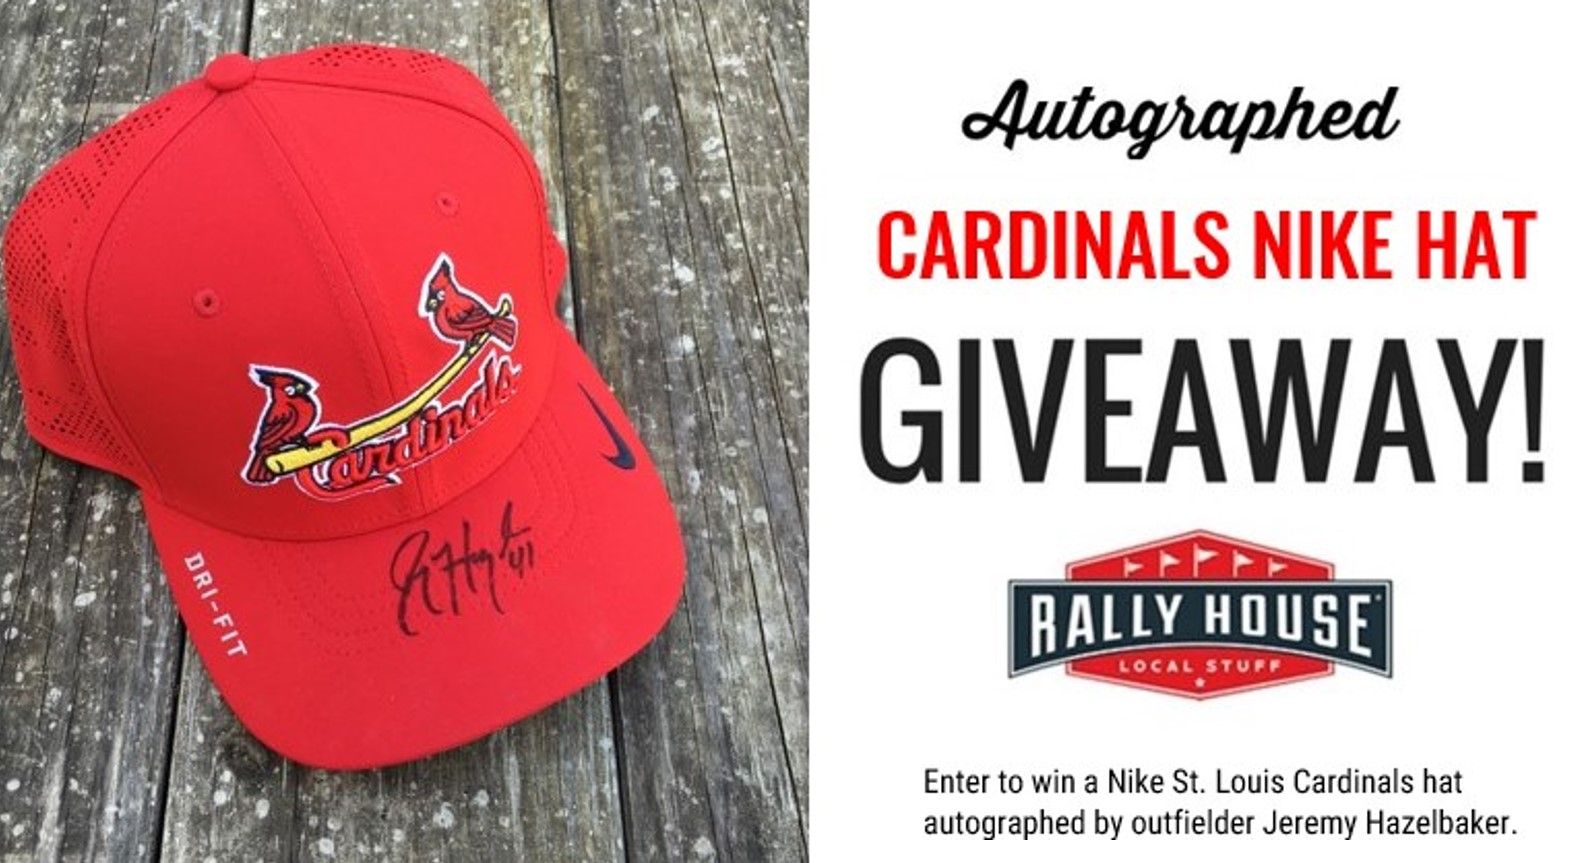 Win a St. Louis Cardinals Nike hat autographed by Jeremy Hazelbaker!